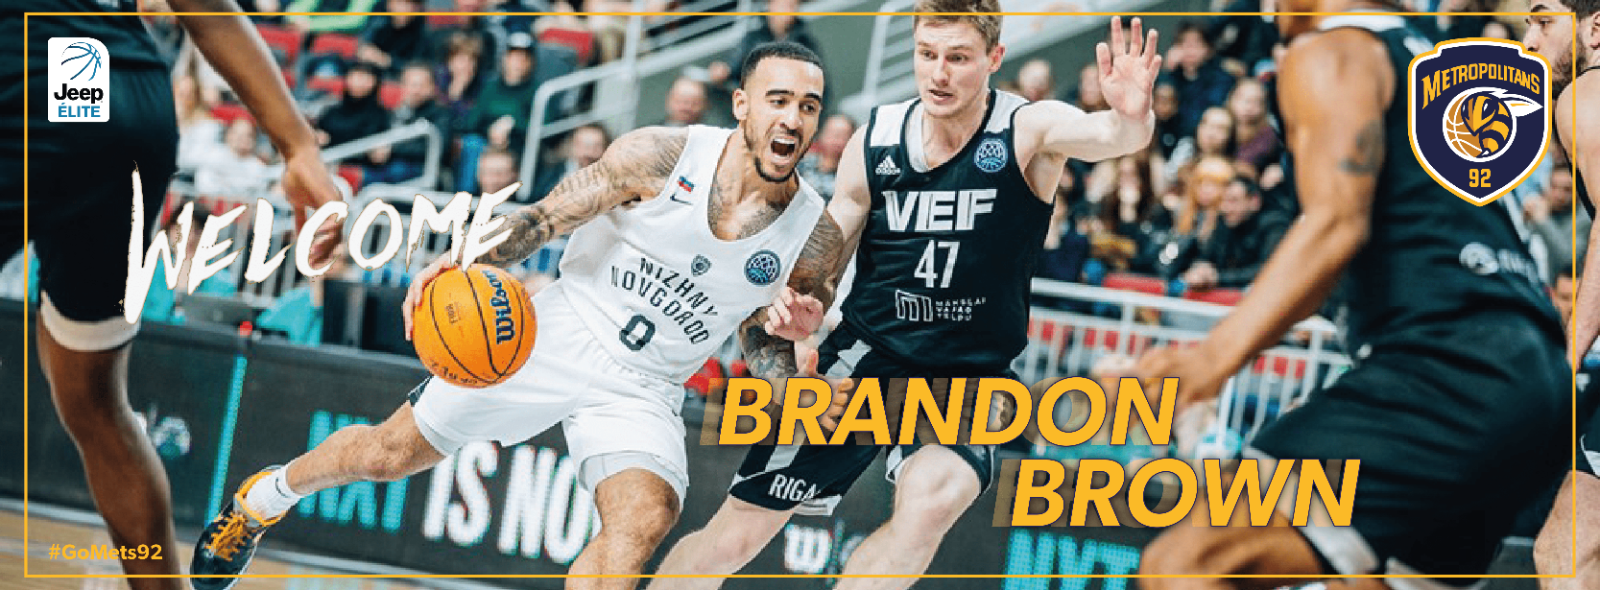 Recrutement - Brandon Brown renforce les Metropolitans 92